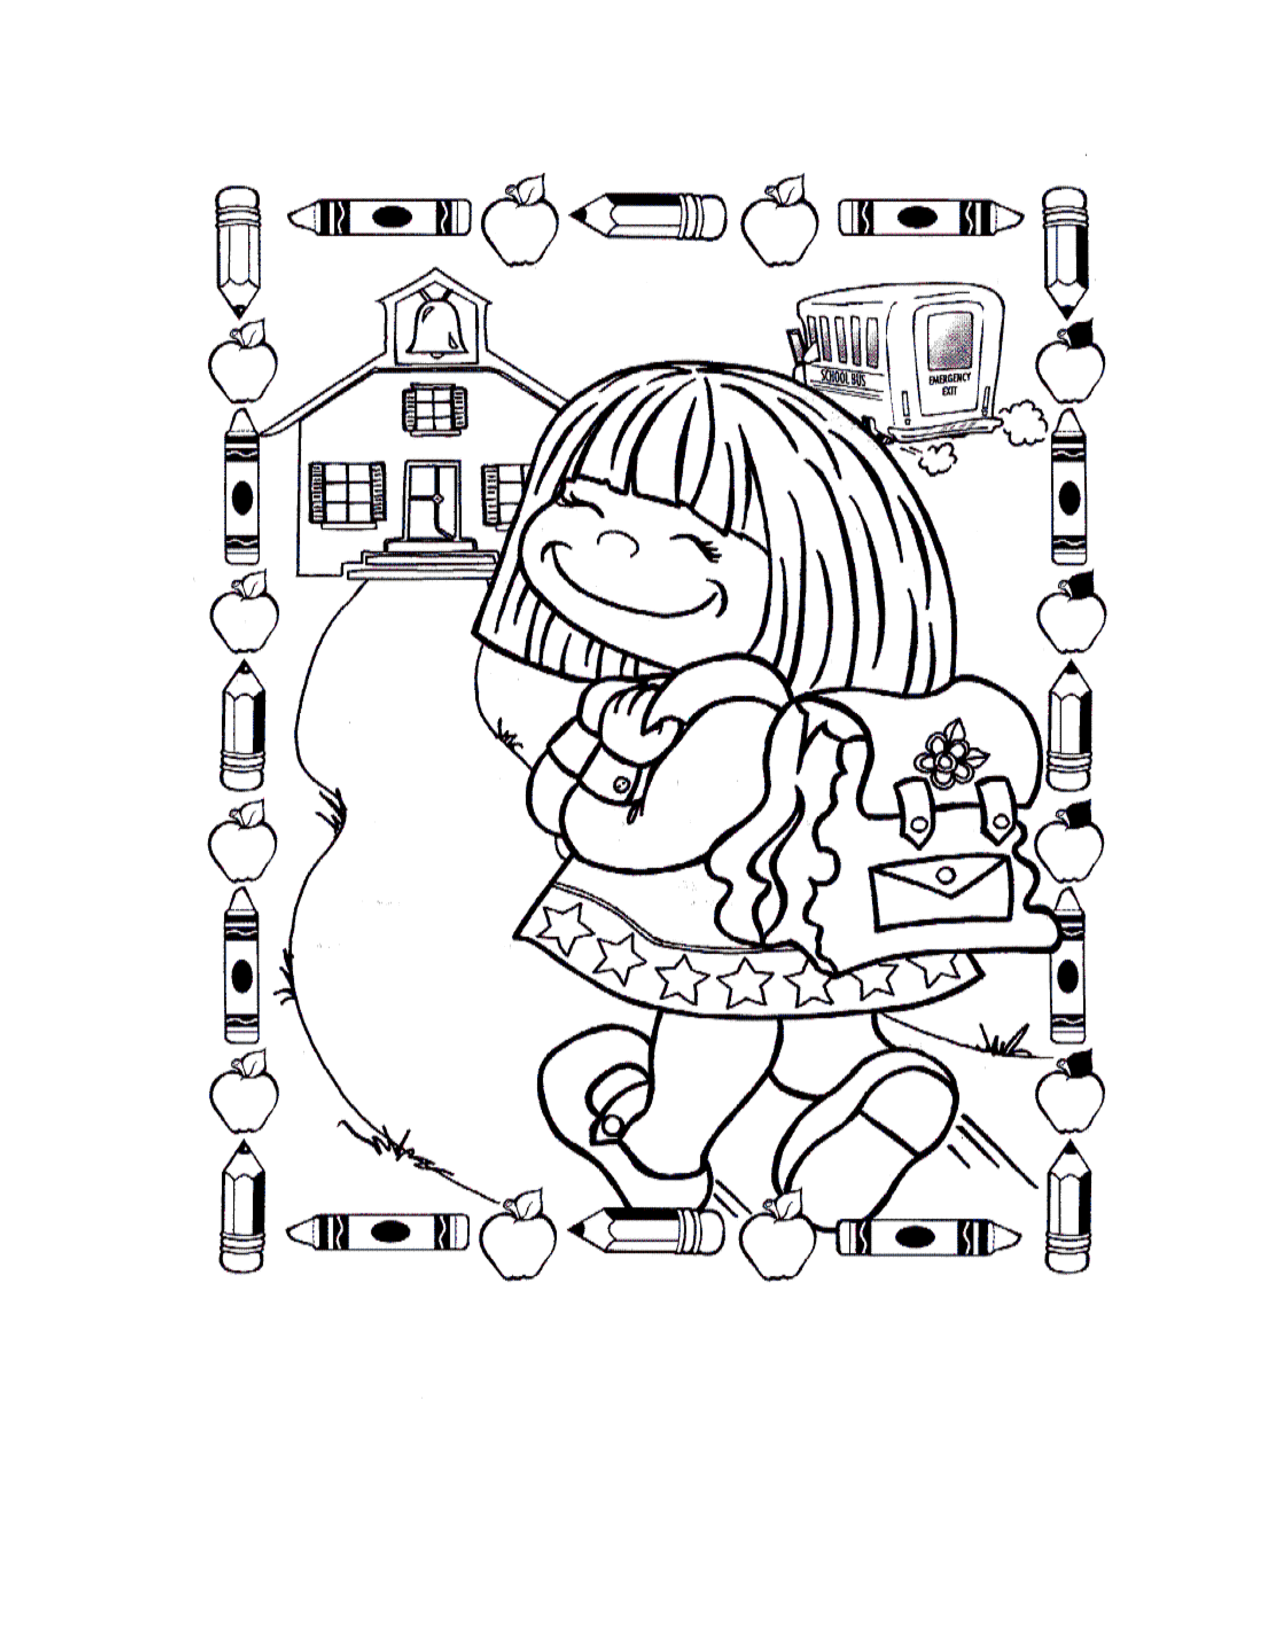 Back To School Girl Printable Coloring Pages School Coloring Pages Coloring Pages Coloring Pages For Girls